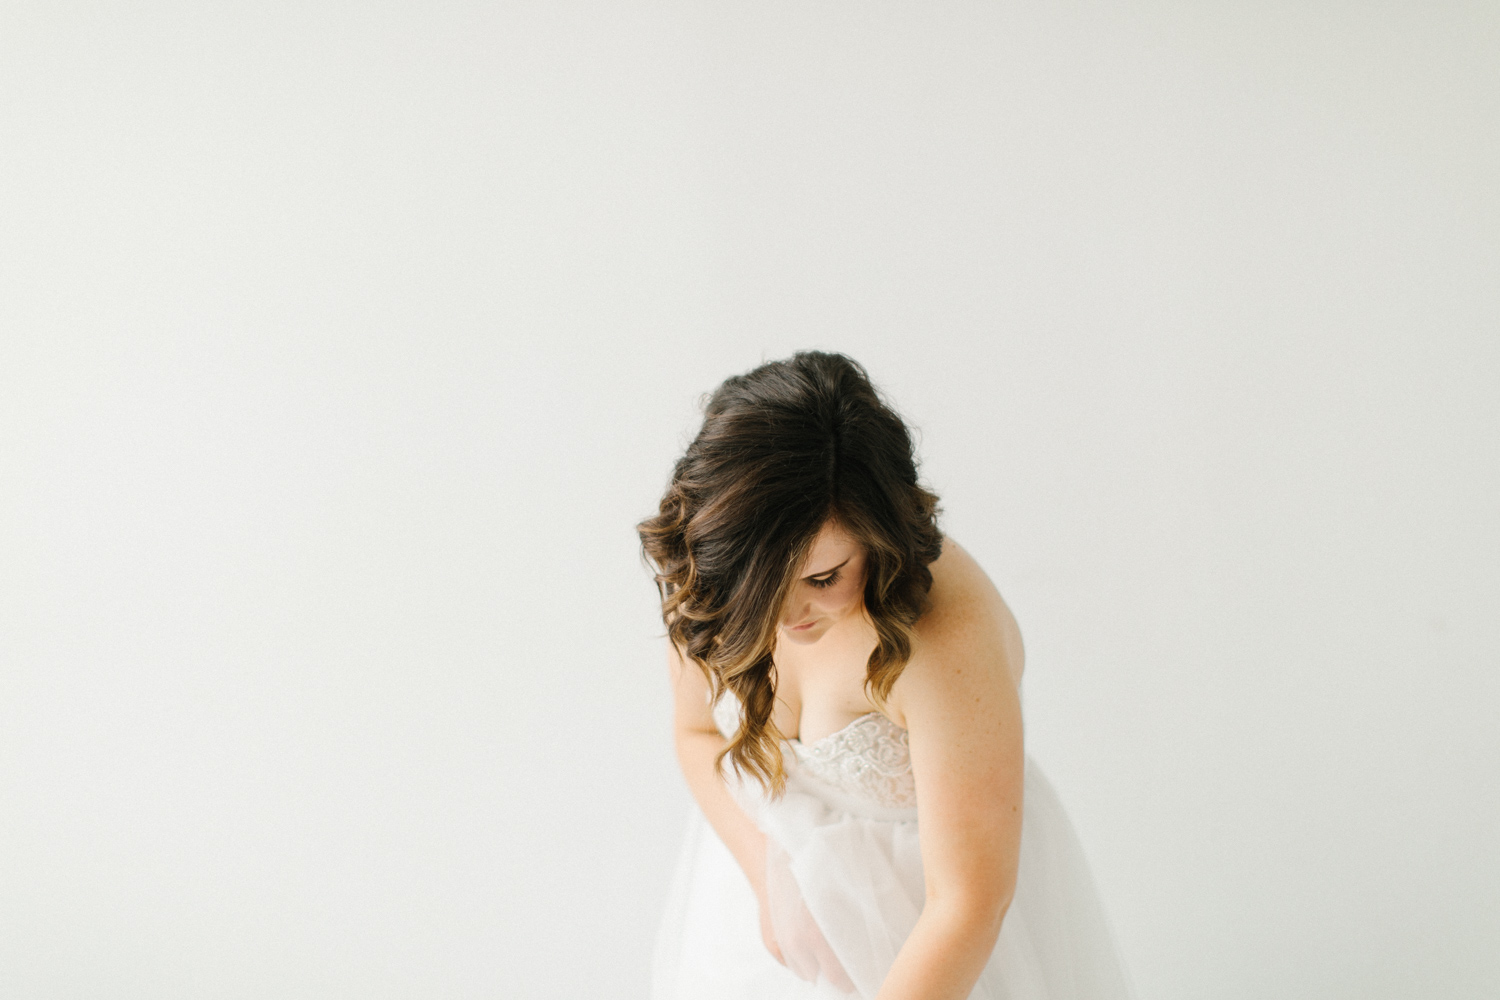 Seattle Fine Art Wedding Photographer | Seattle Downtown White Studio Bridal Session | Stunning Wedding Bouquet | Seattle Bride | Seattle Wedding | Photography Studio Space | Emma Rose Company Wedding Photography-12.jpg